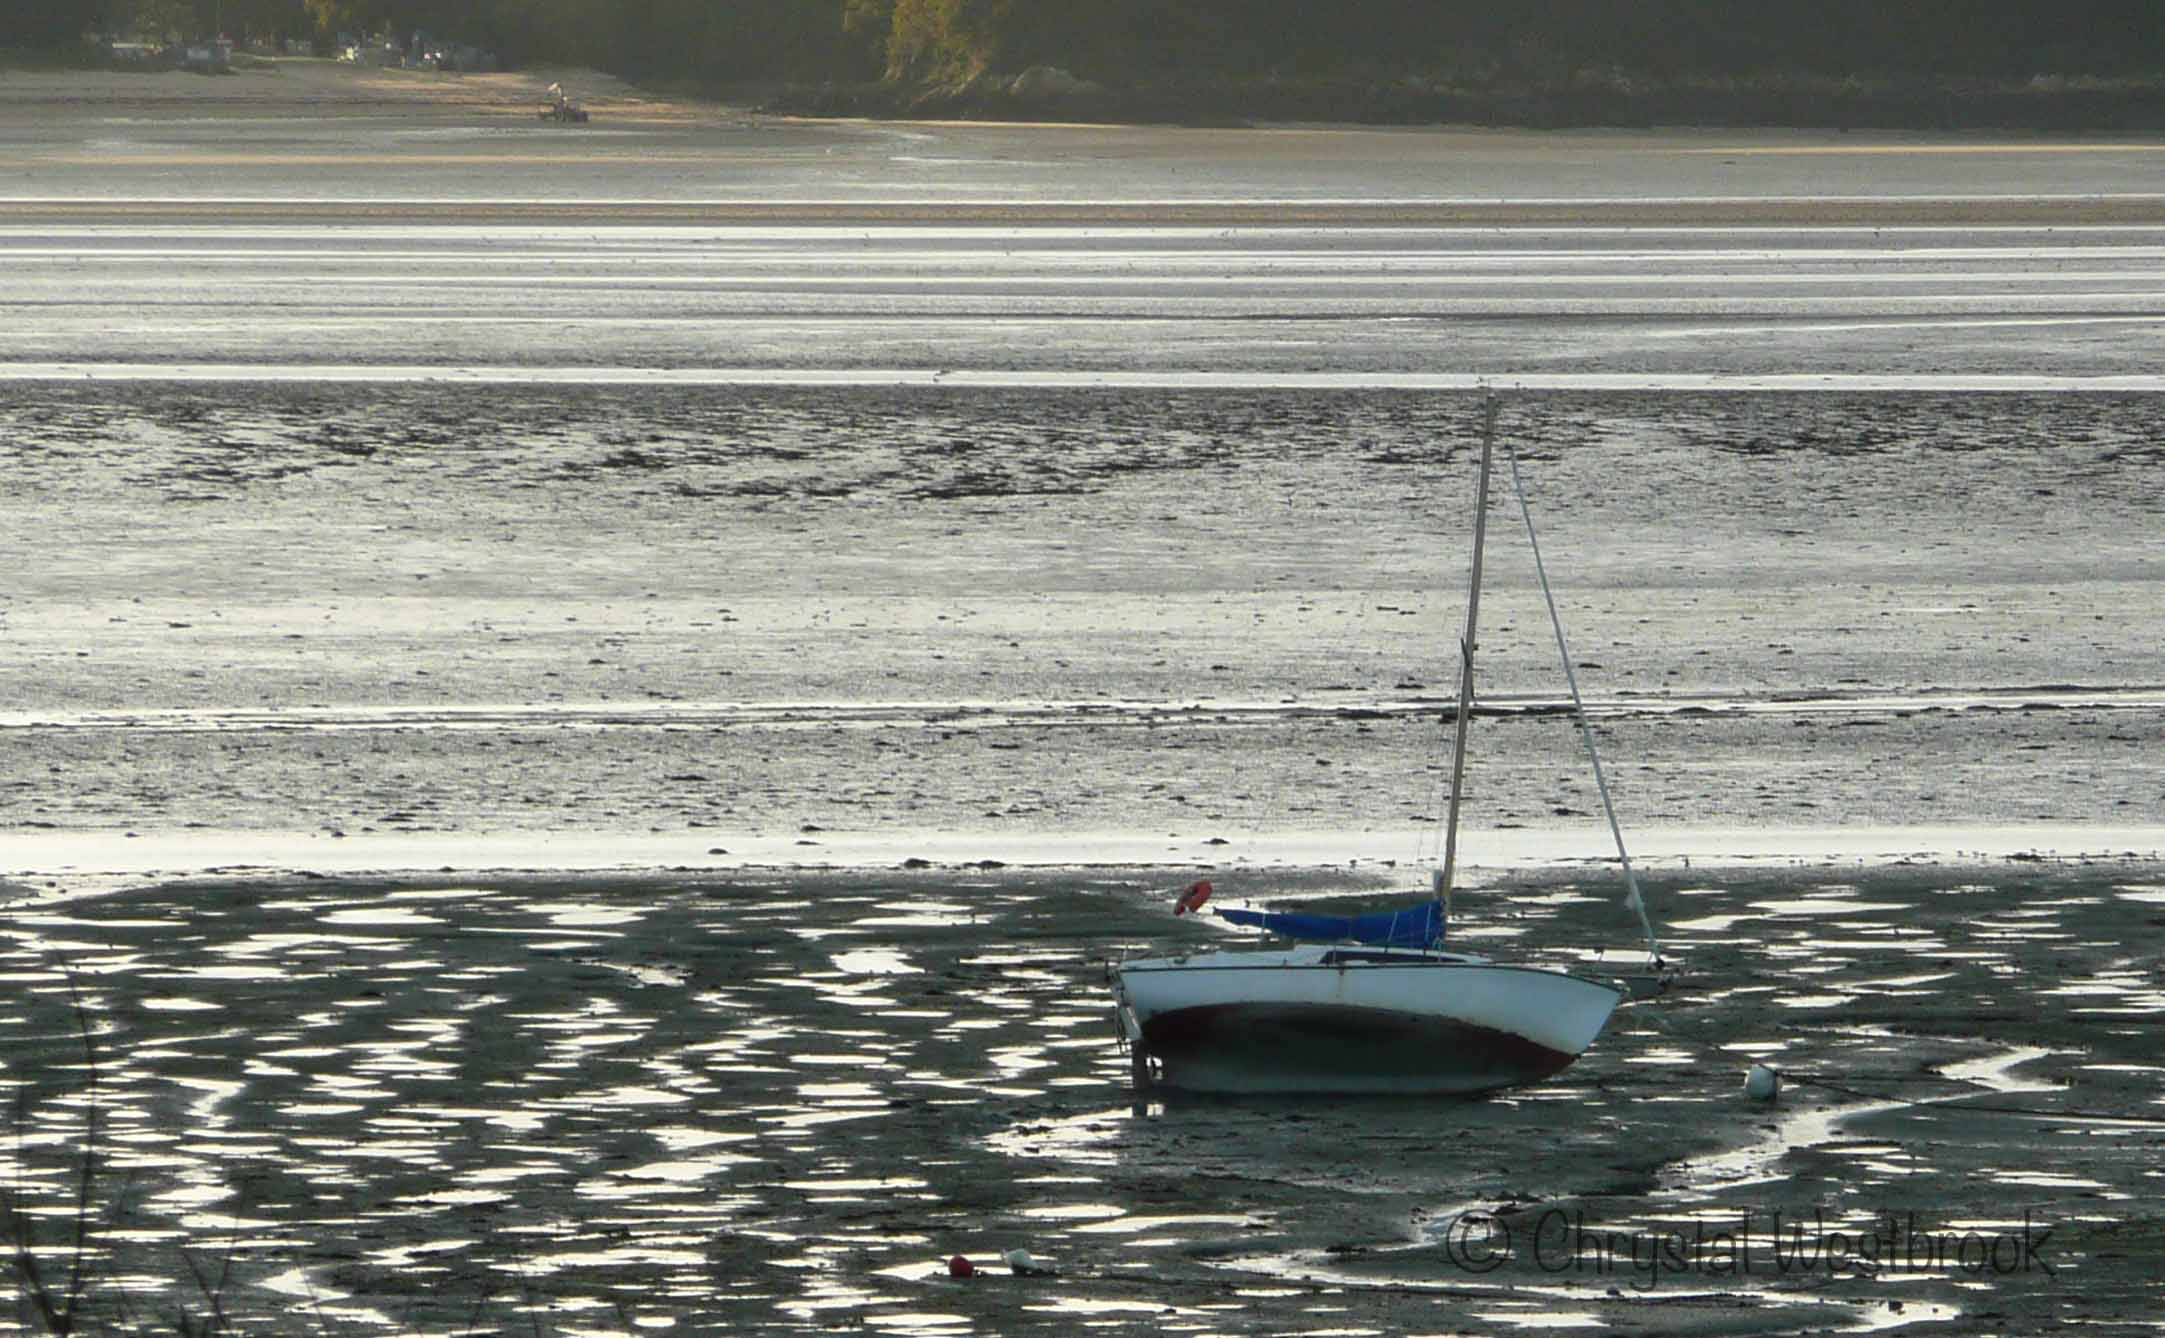 [IMAGE] Sailboat aground at low tide